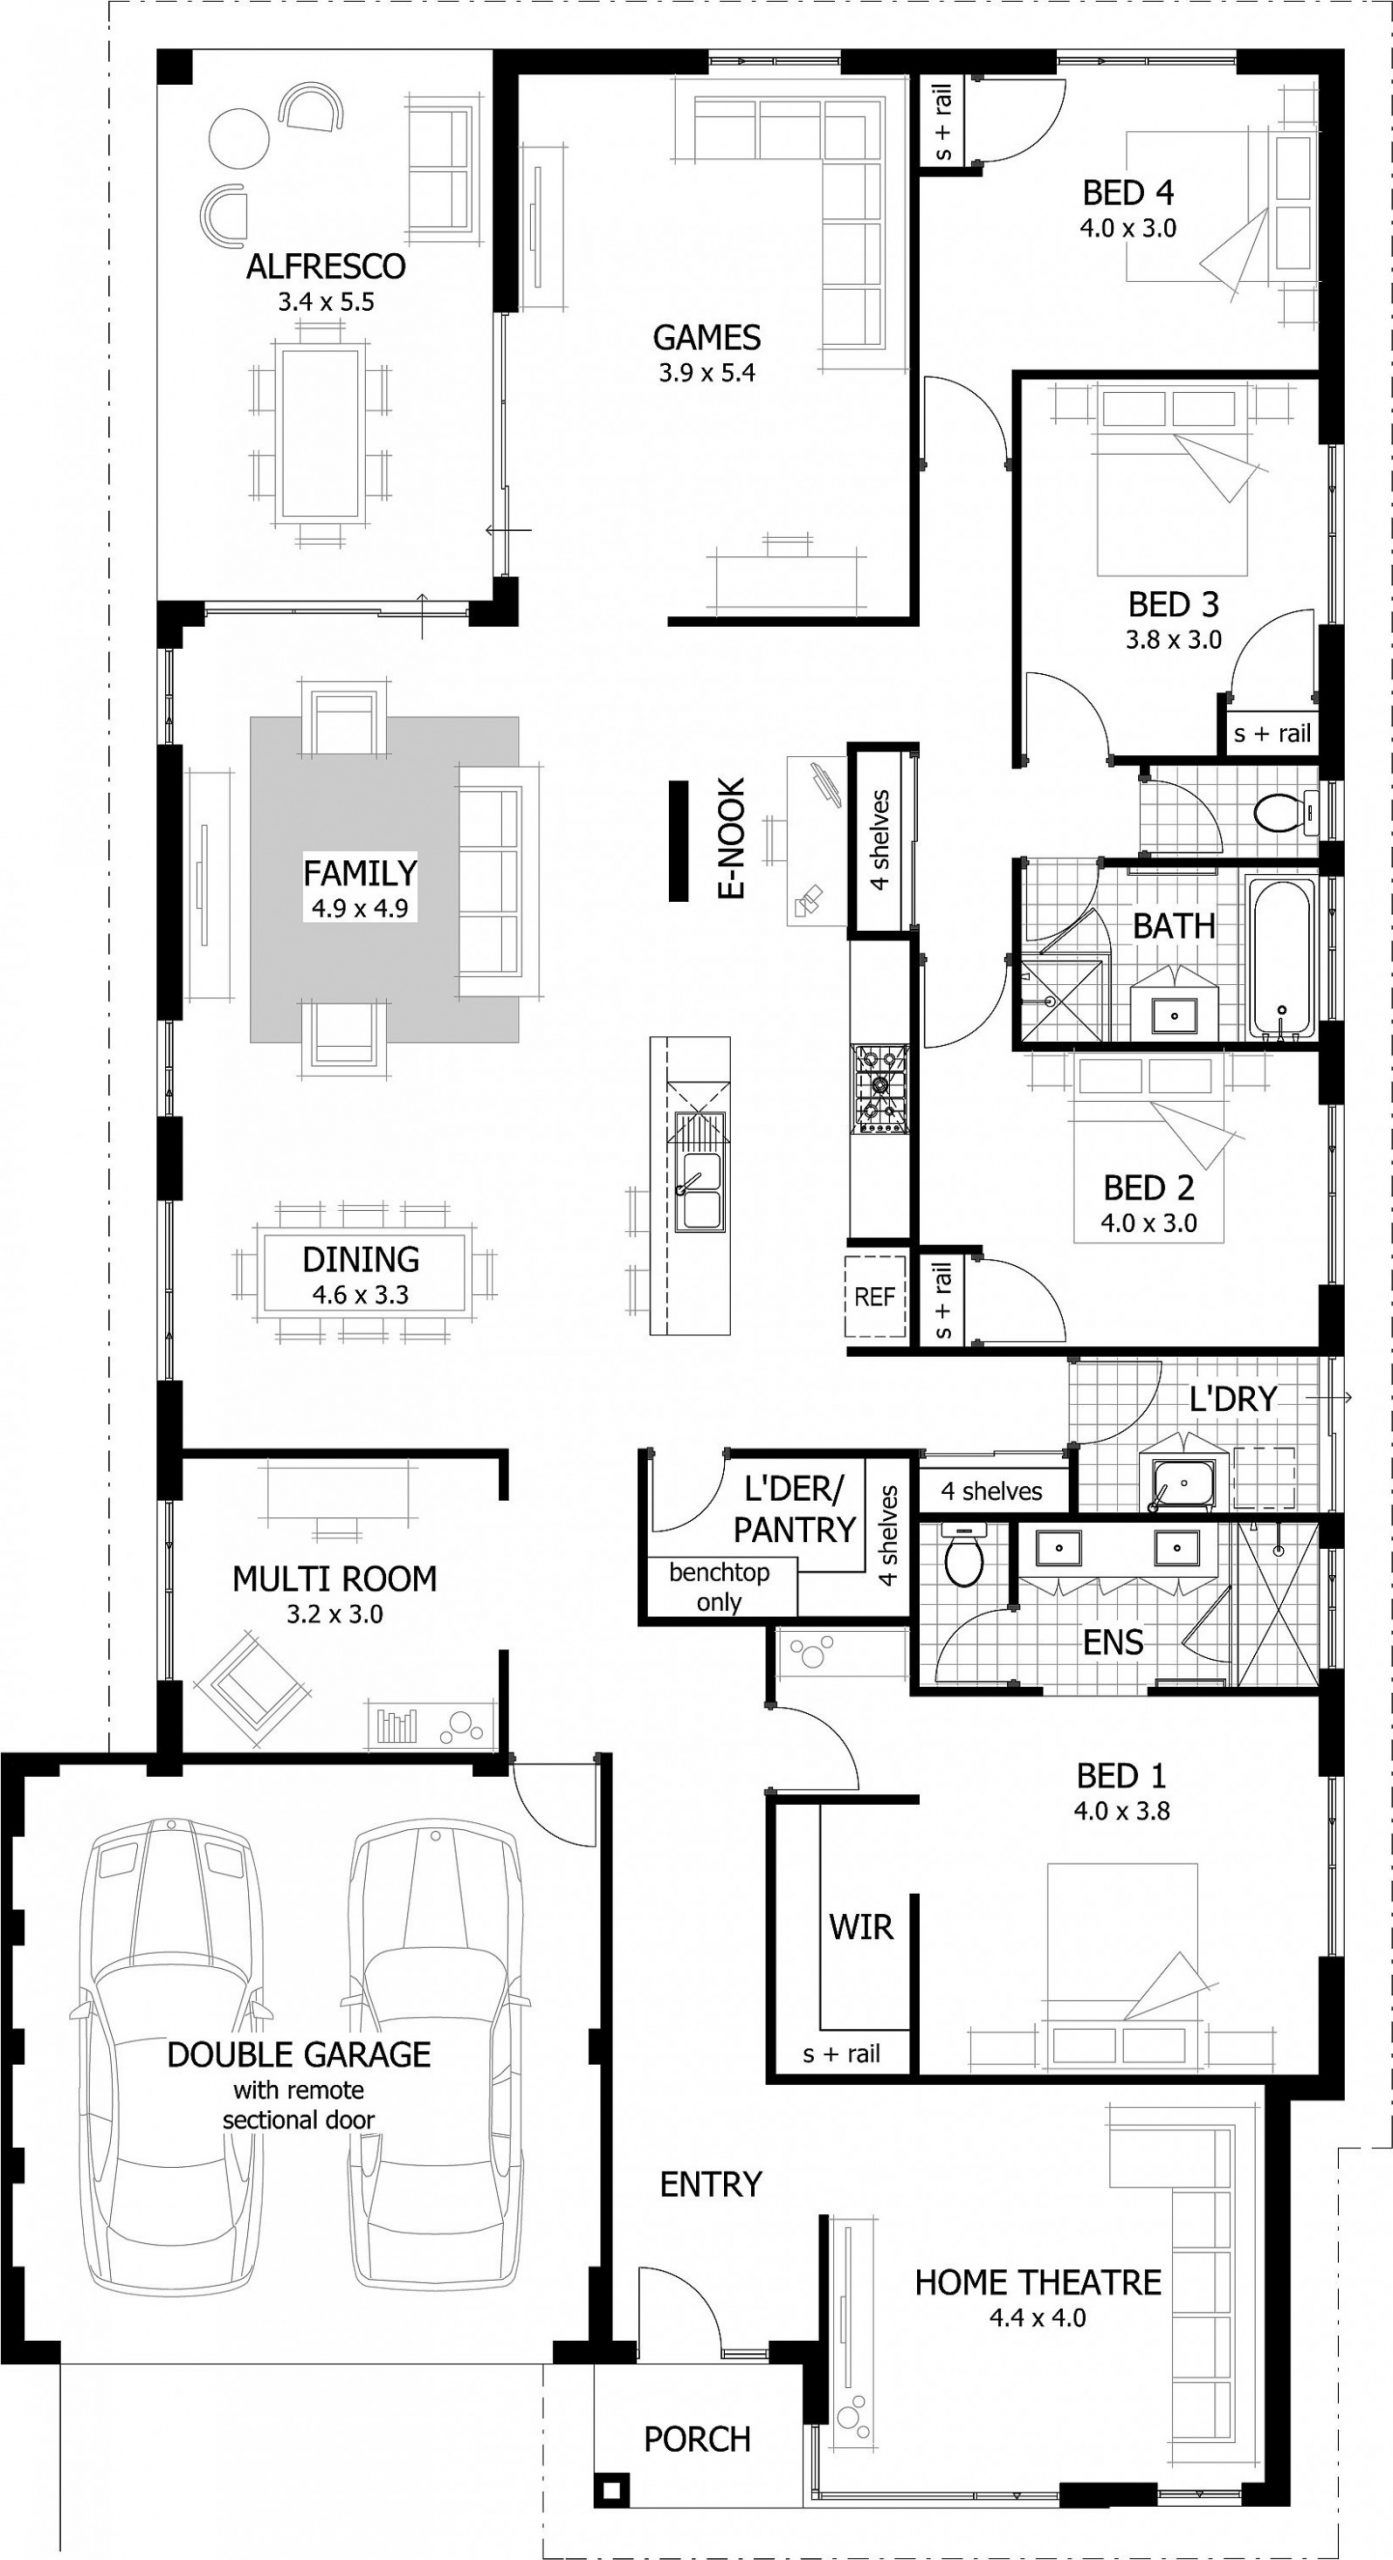 5 Bedroom Floor Plan Bungalow House Plans Australia 4 Bedroom House Plans Home Design Floor Plans